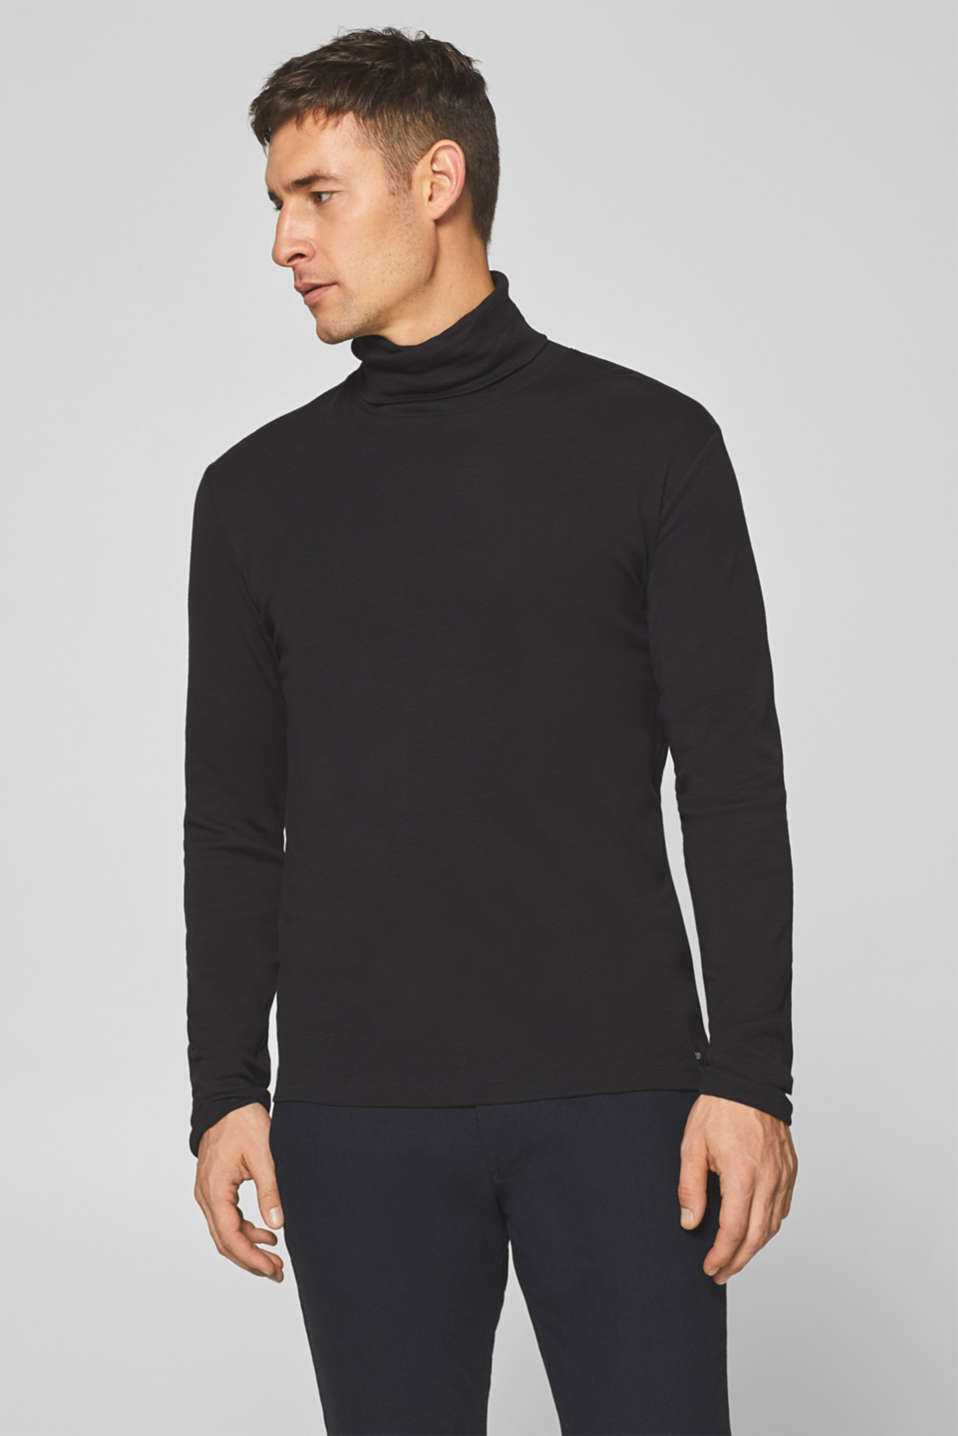 Esprit - Slub jersey long sleeve top with a polo neck